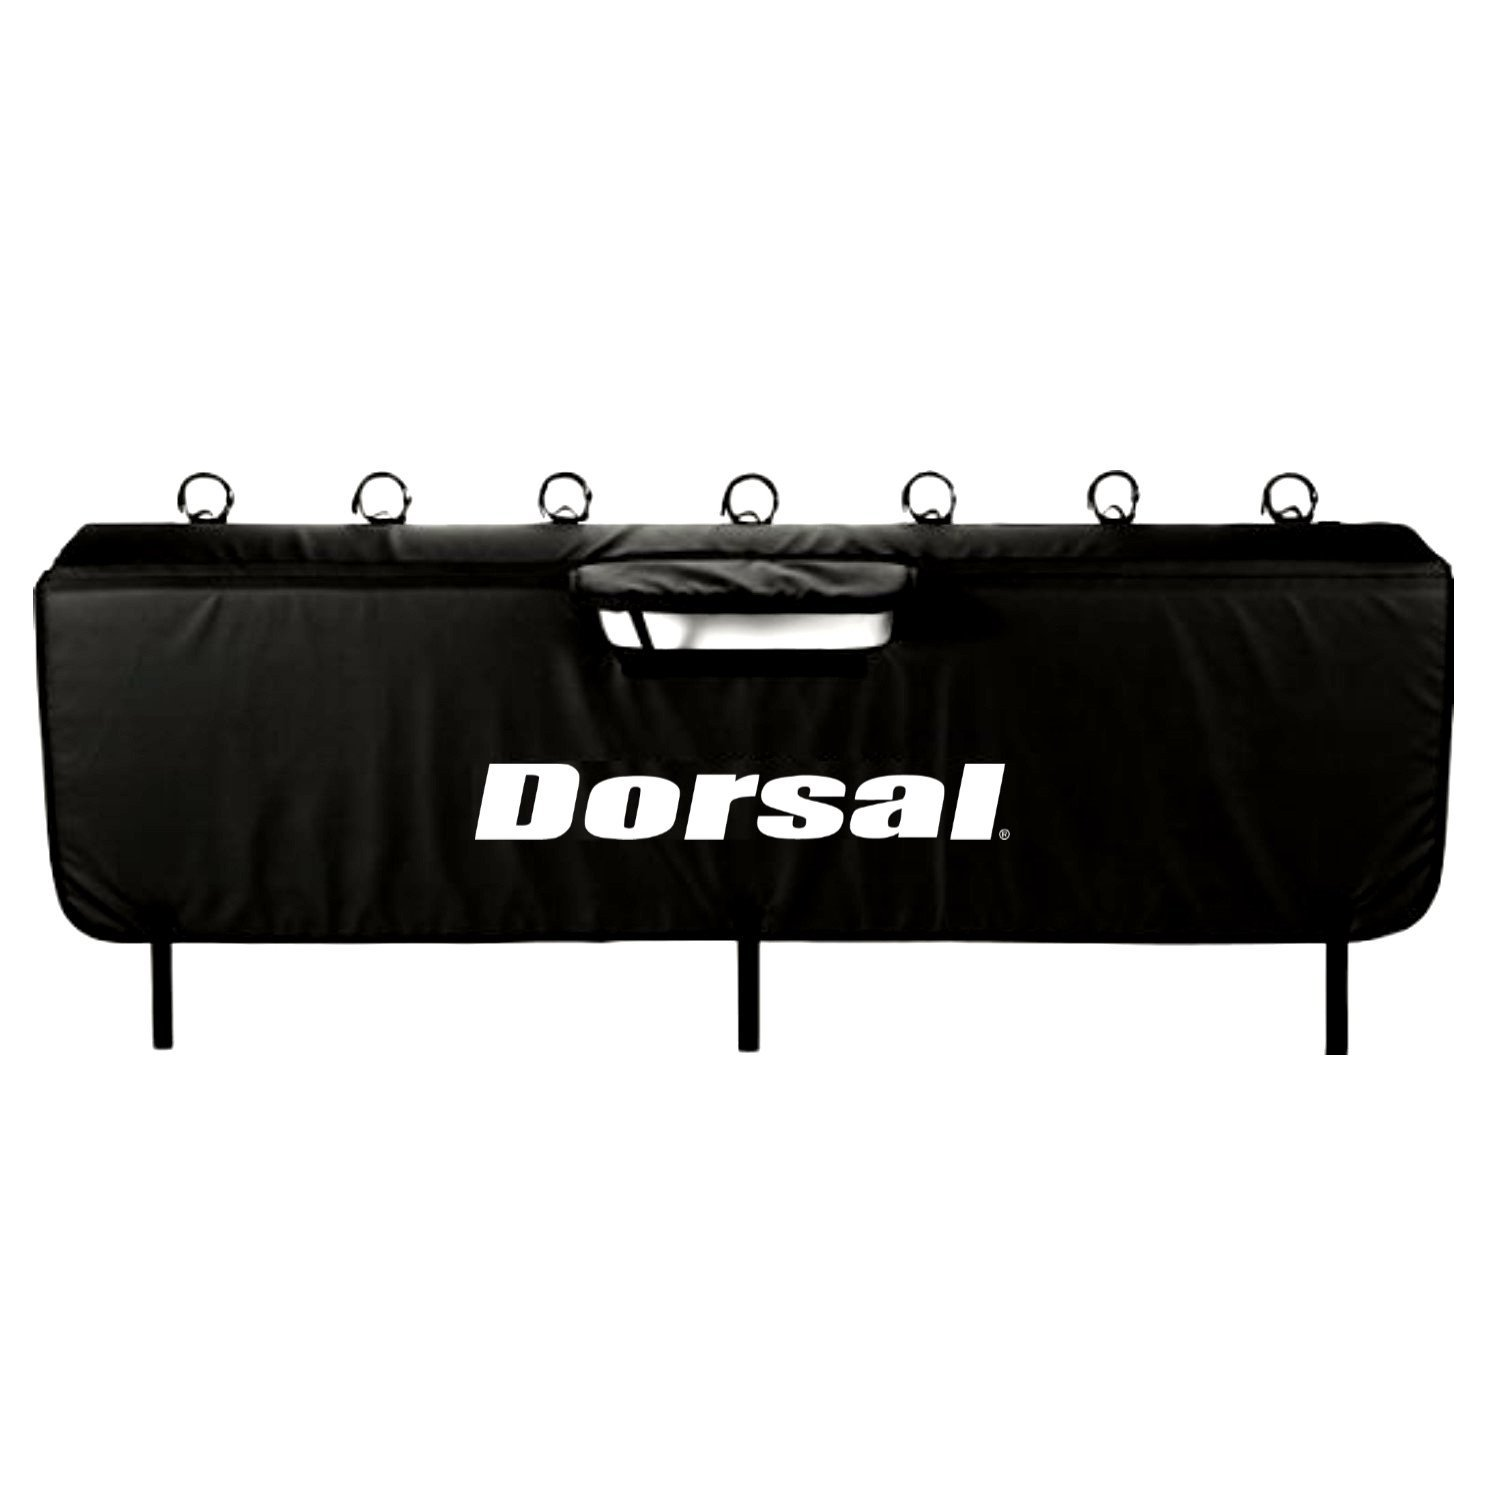 DORSAL Truck Tailgate Pad Black Surf Bike for Surfboard Bicycle Payload by DORSAL